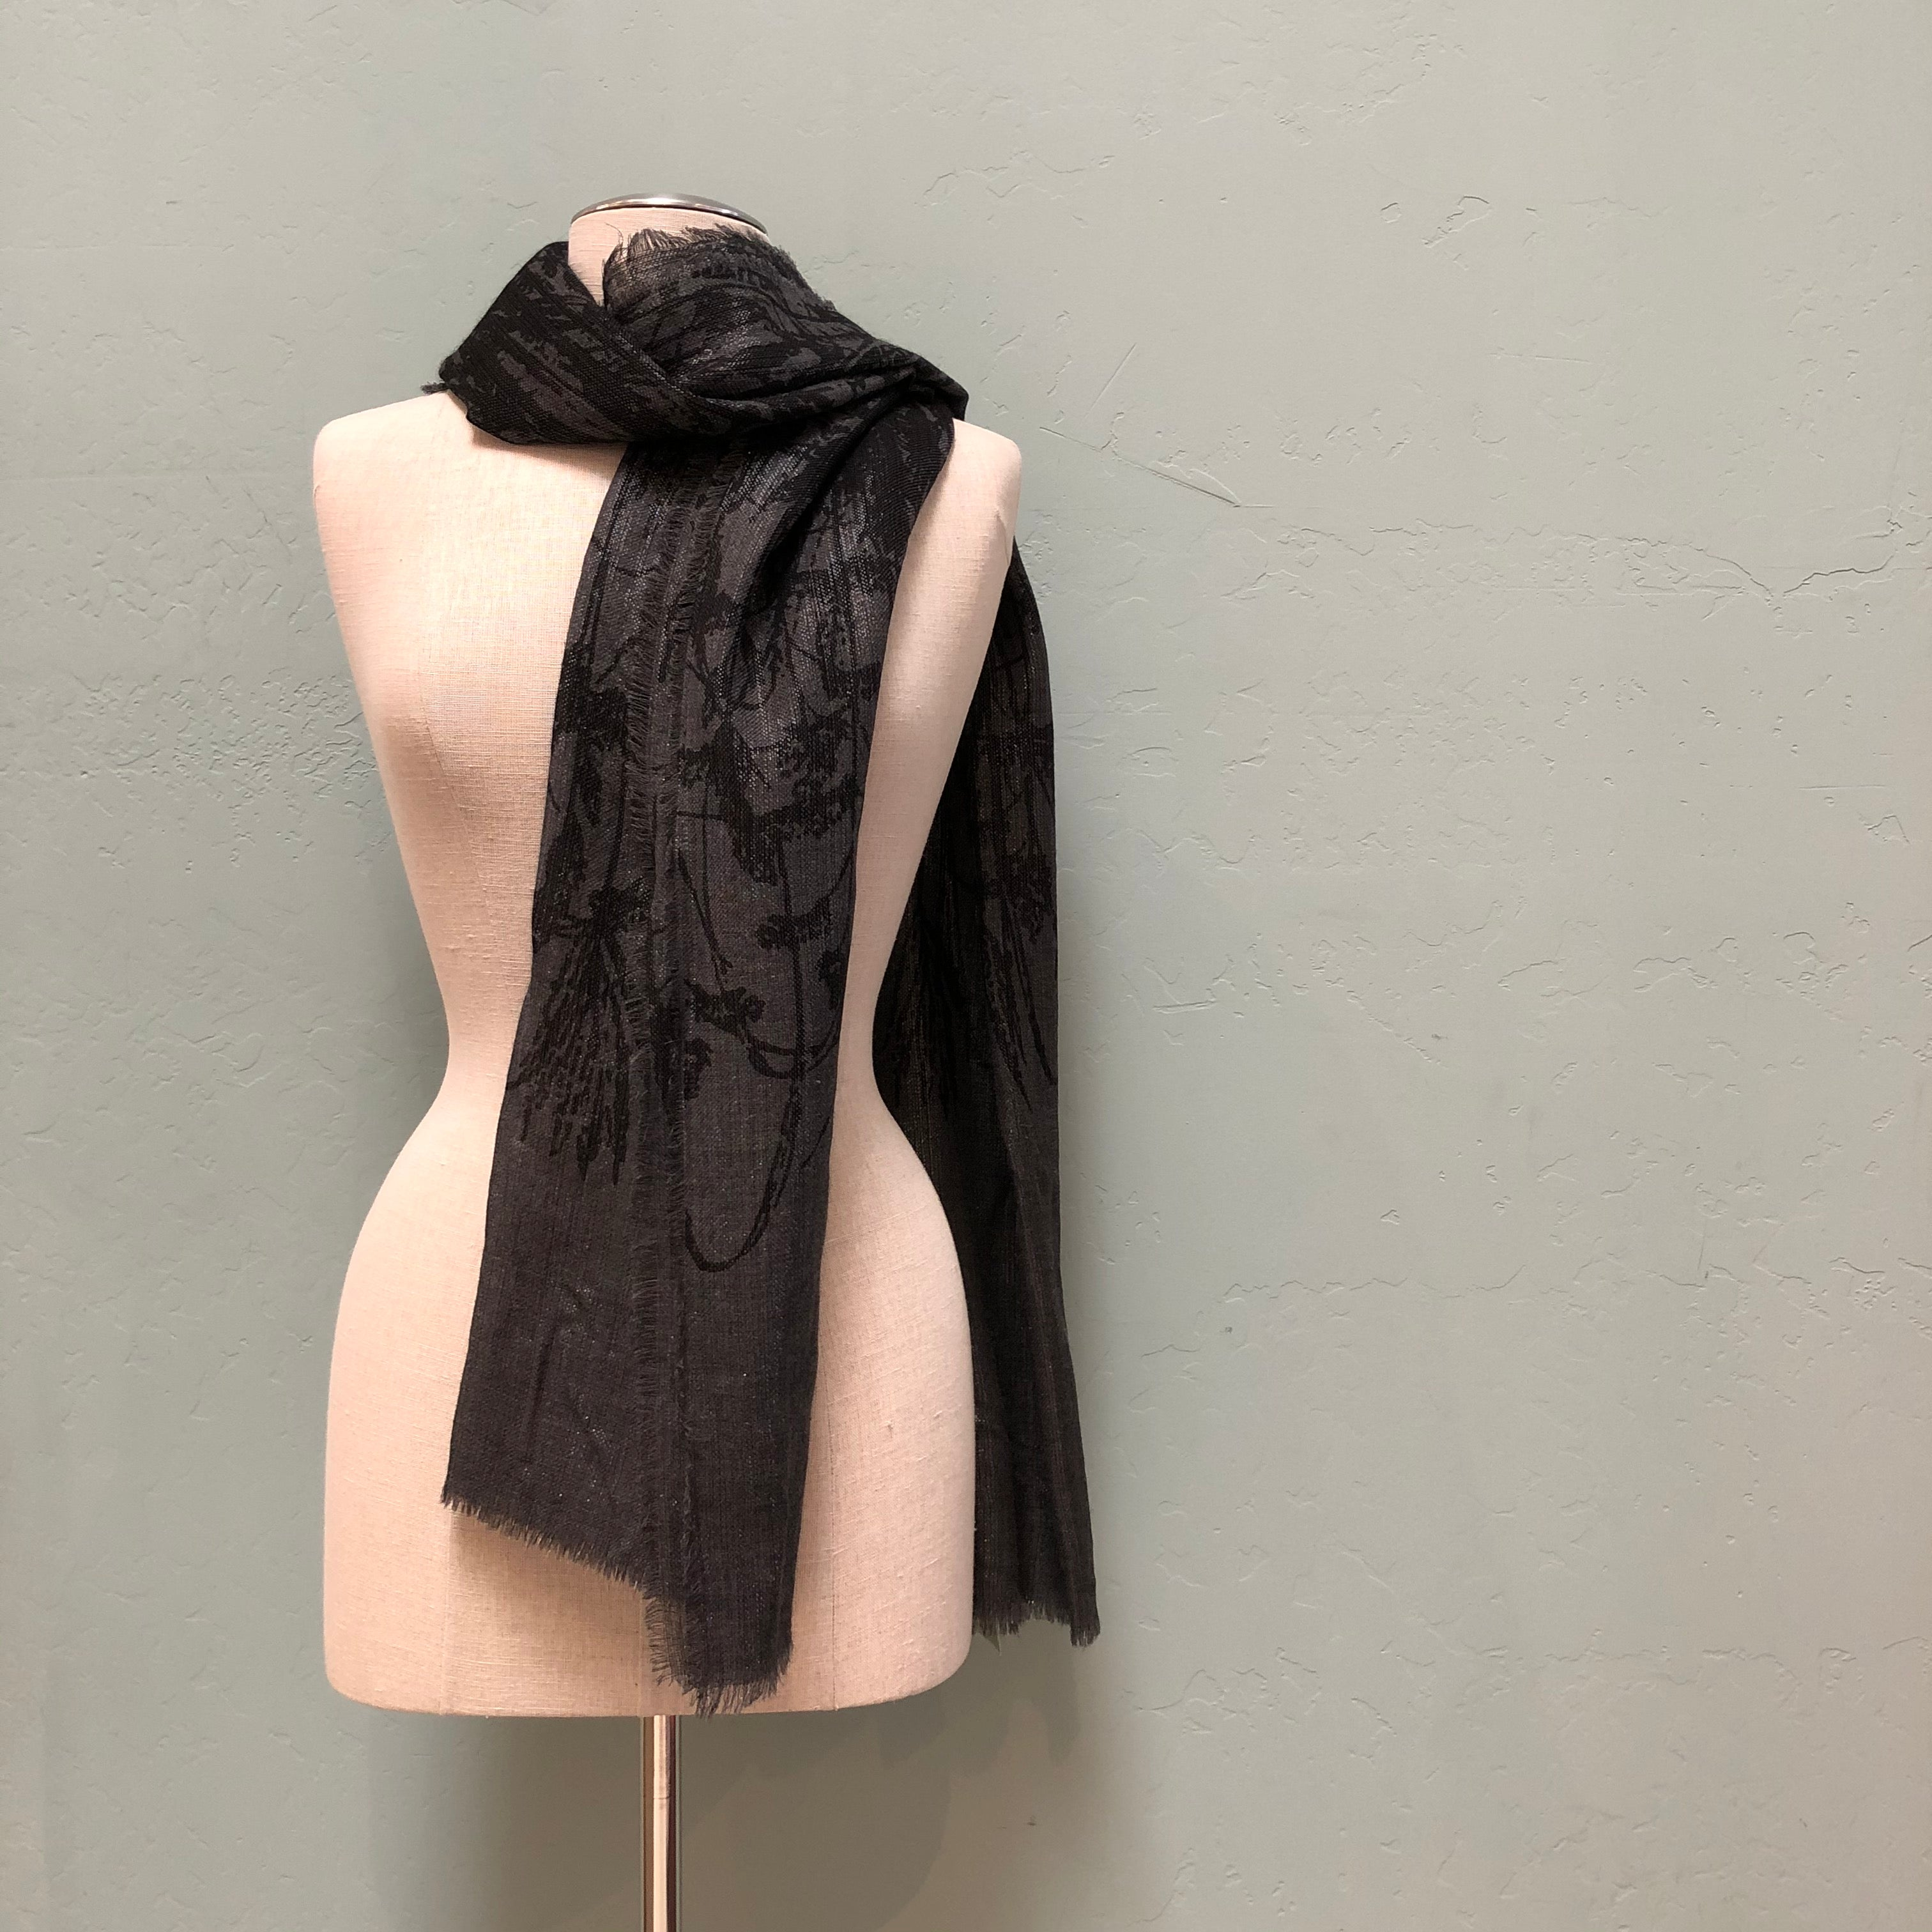 Lua Charcoal Falling Brances Shawl